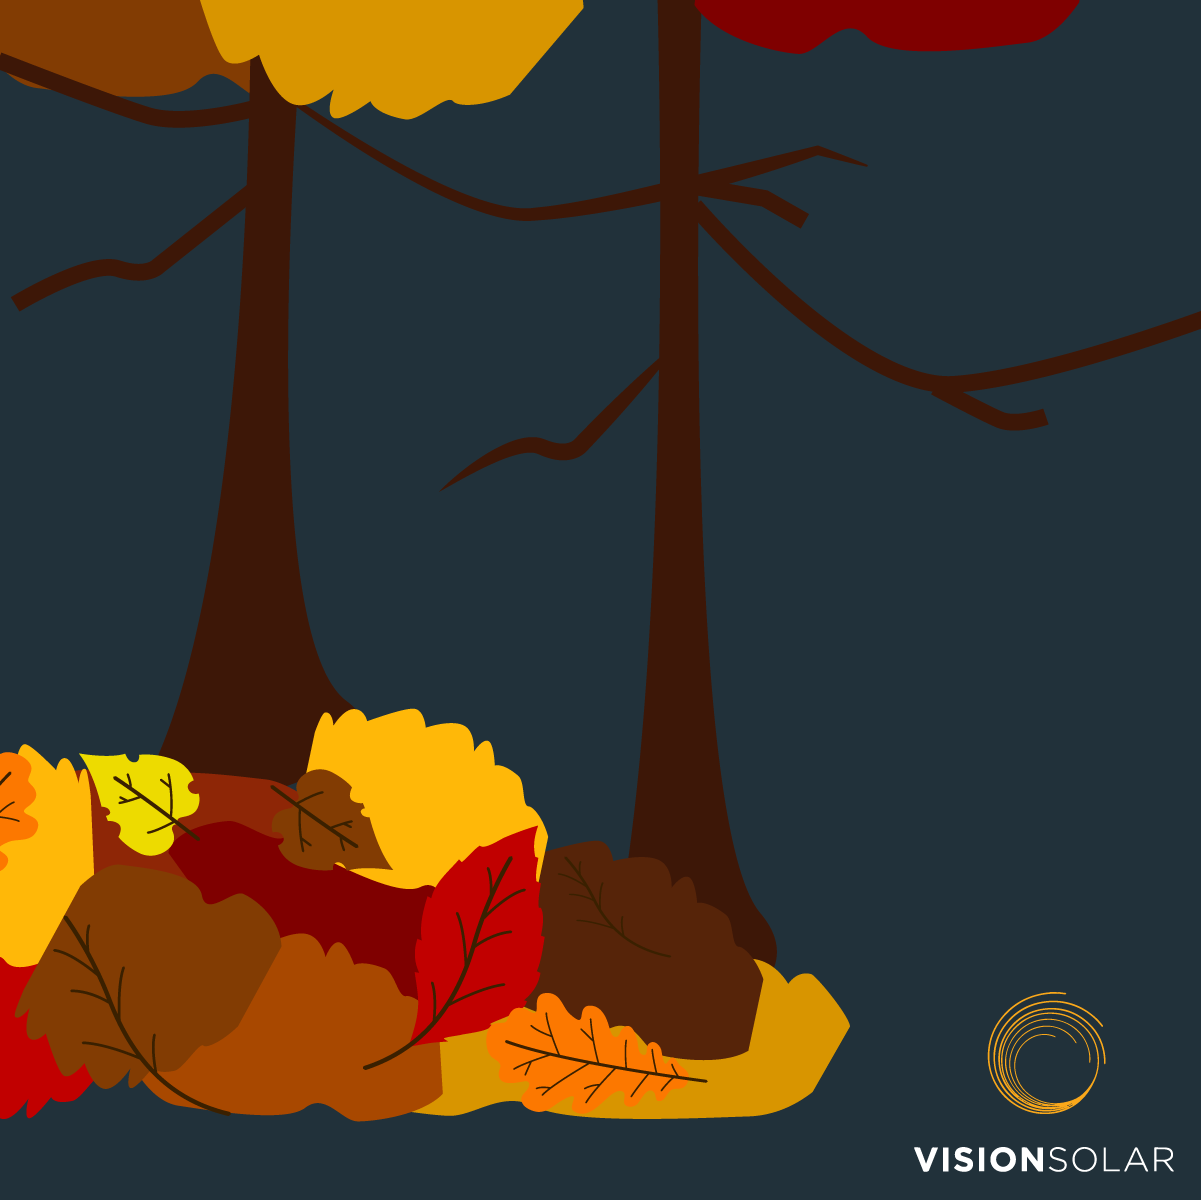 Vision Solar : Solar Power During the Fall